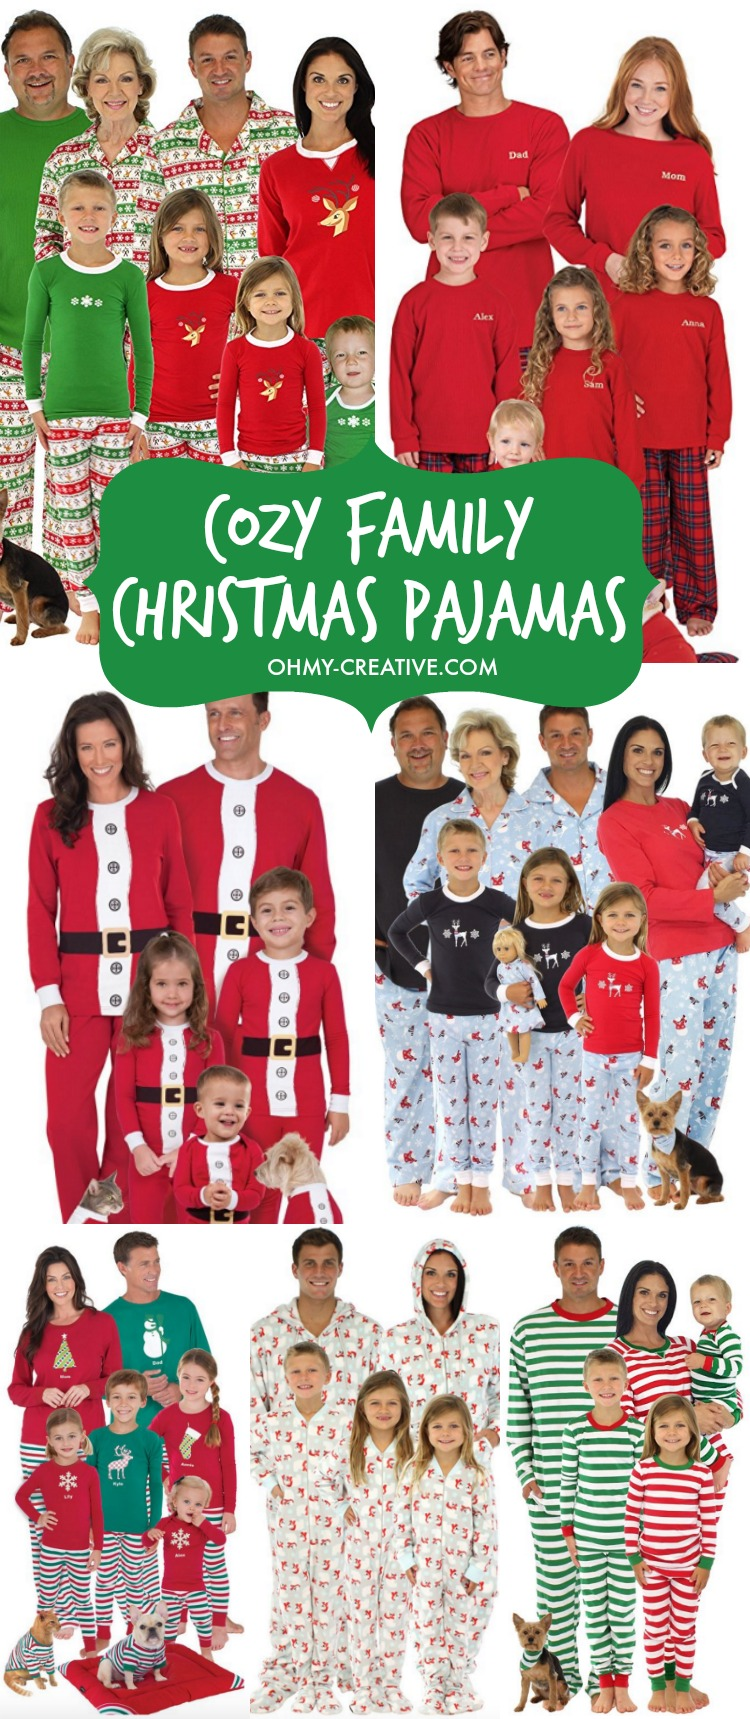 Matching Family Christmas Pajamas.11 Cozy Family Christmas Pajamas For 2019 Oh My Creative